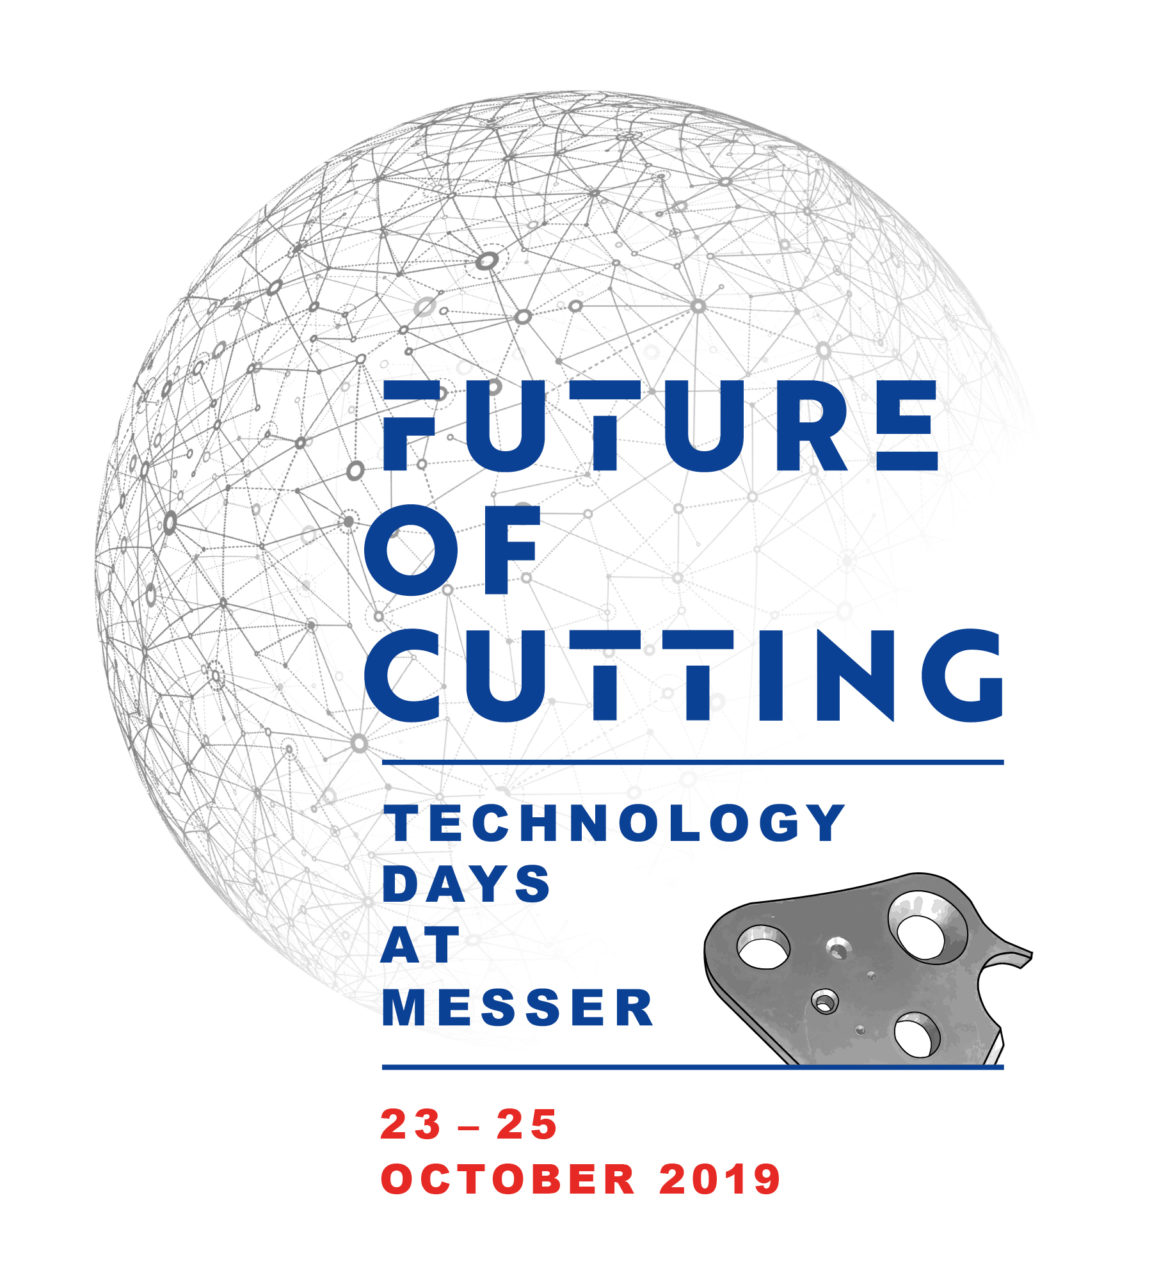 Messer Technology Days 2019